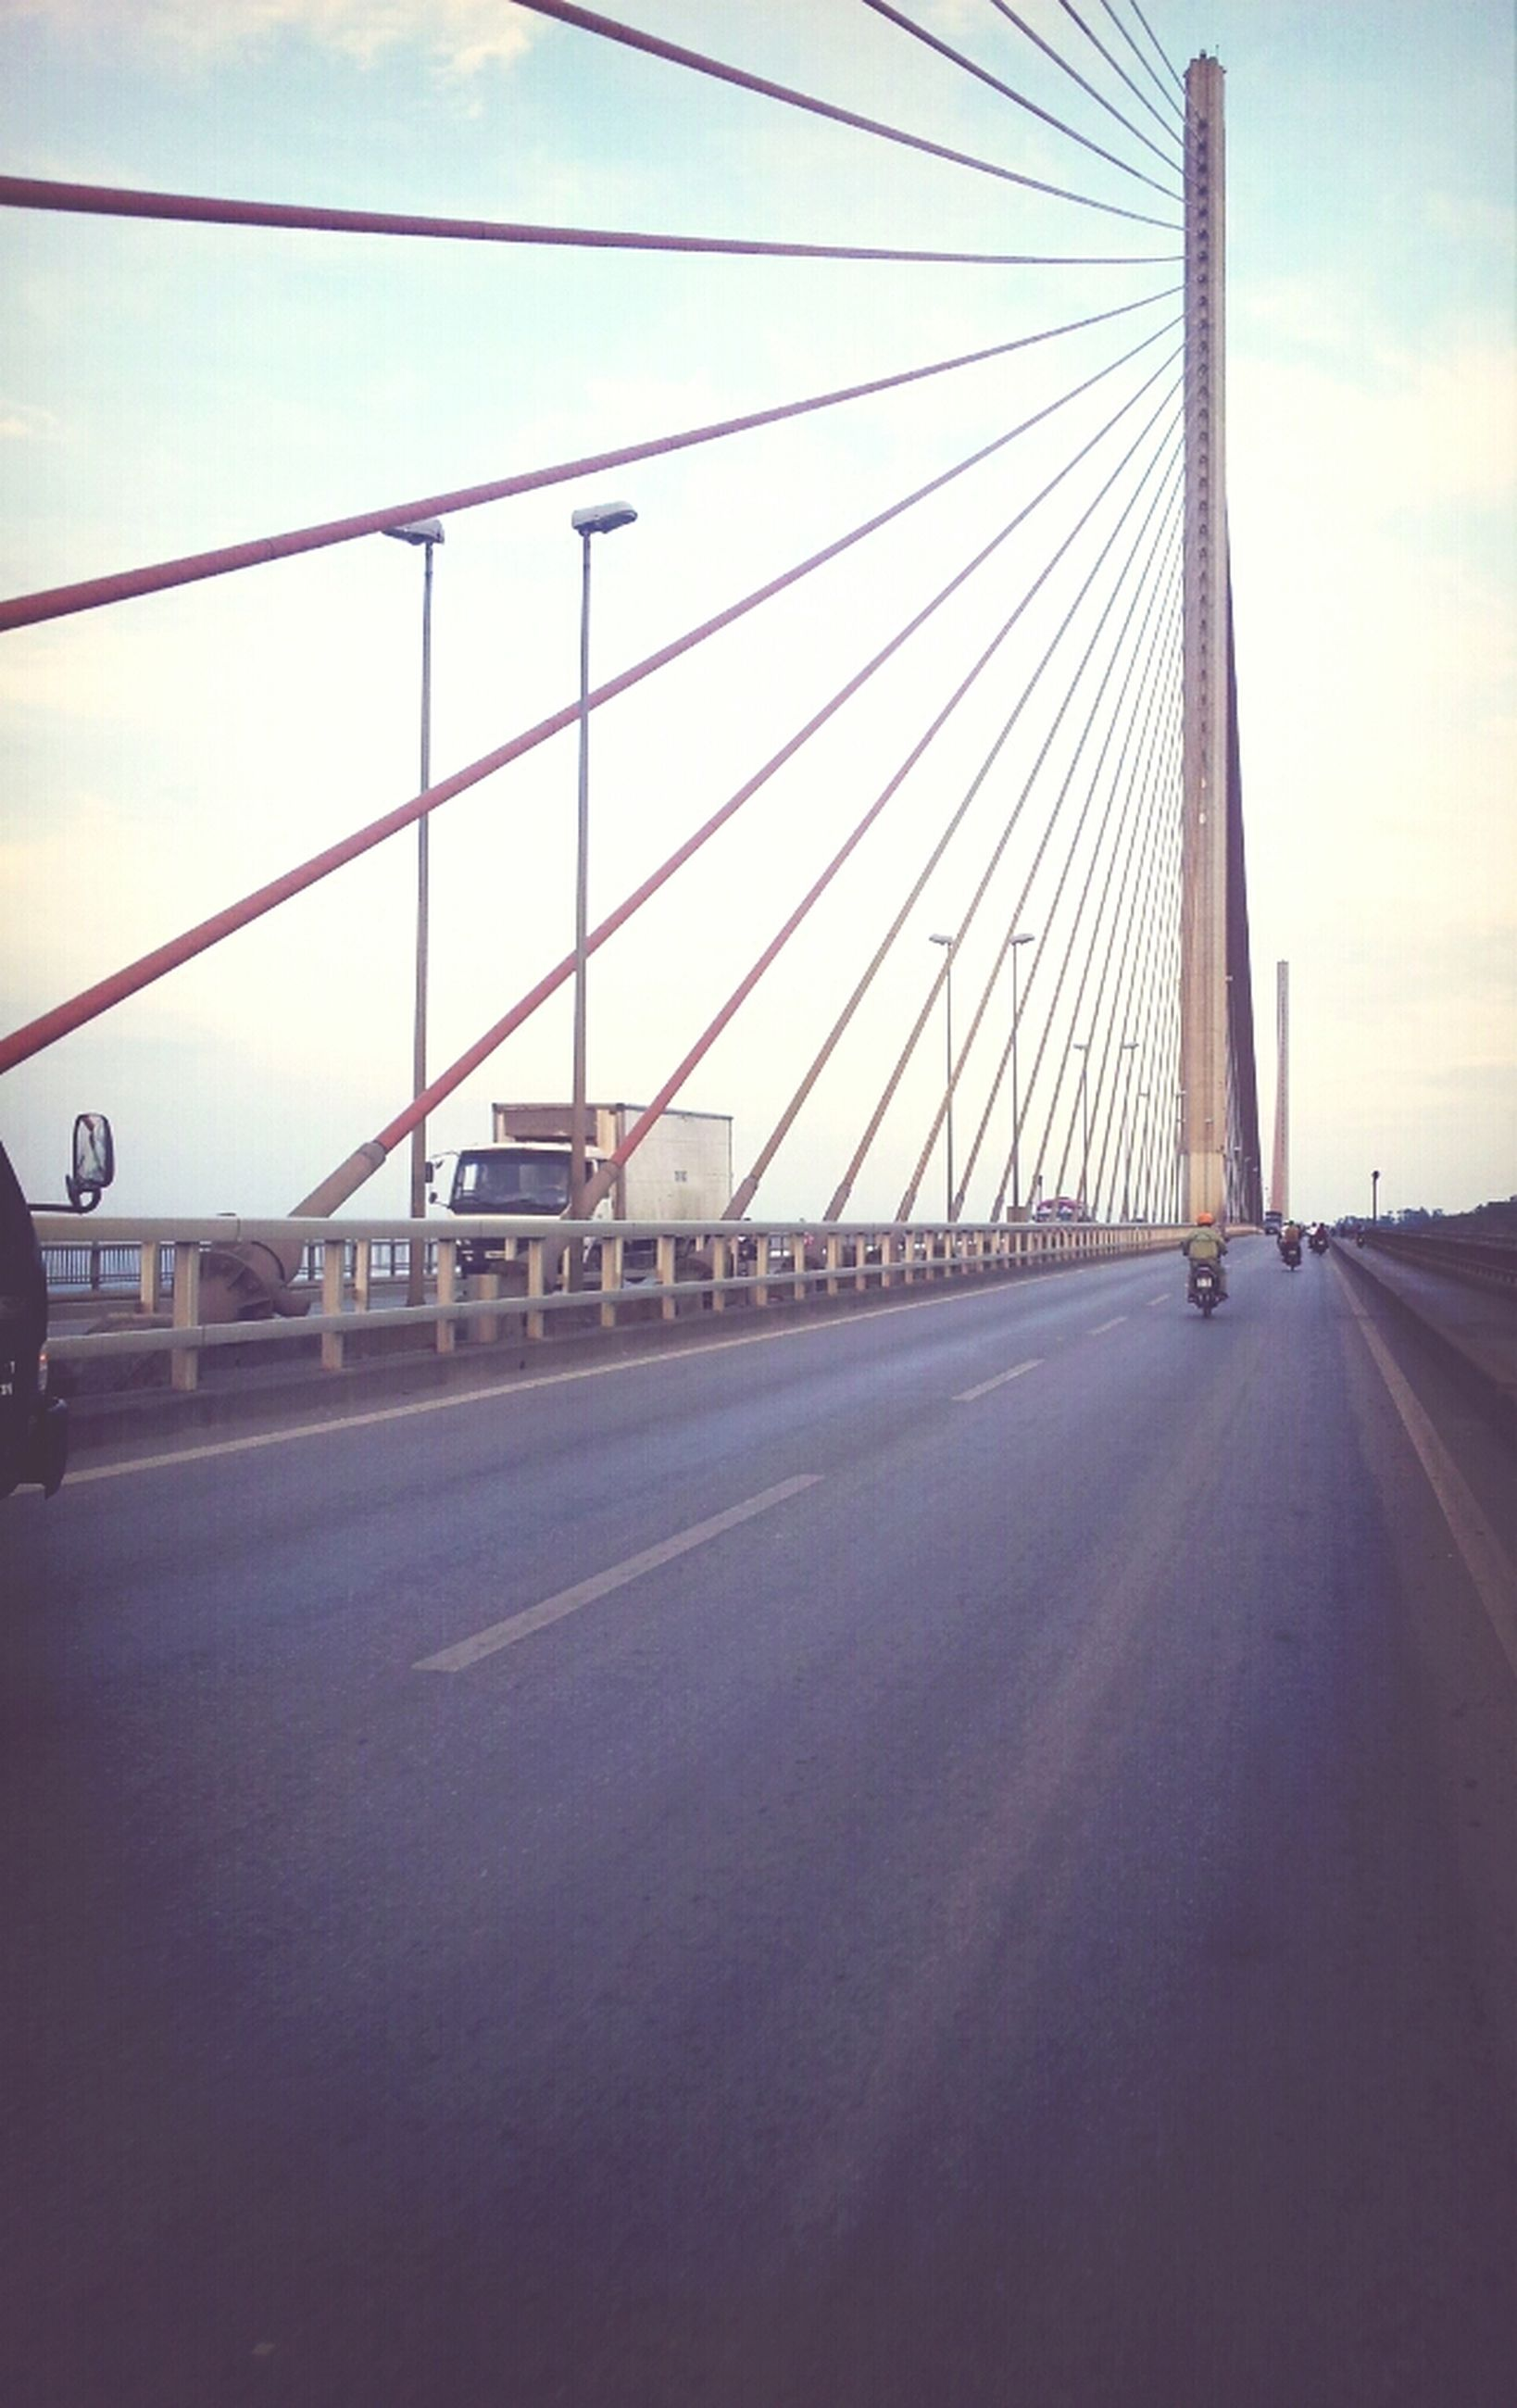 transportation, the way forward, road, road marking, sky, diminishing perspective, connection, built structure, architecture, vanishing point, car, bridge - man made structure, street, land vehicle, cloud - sky, long, mode of transport, engineering, empty, cloud